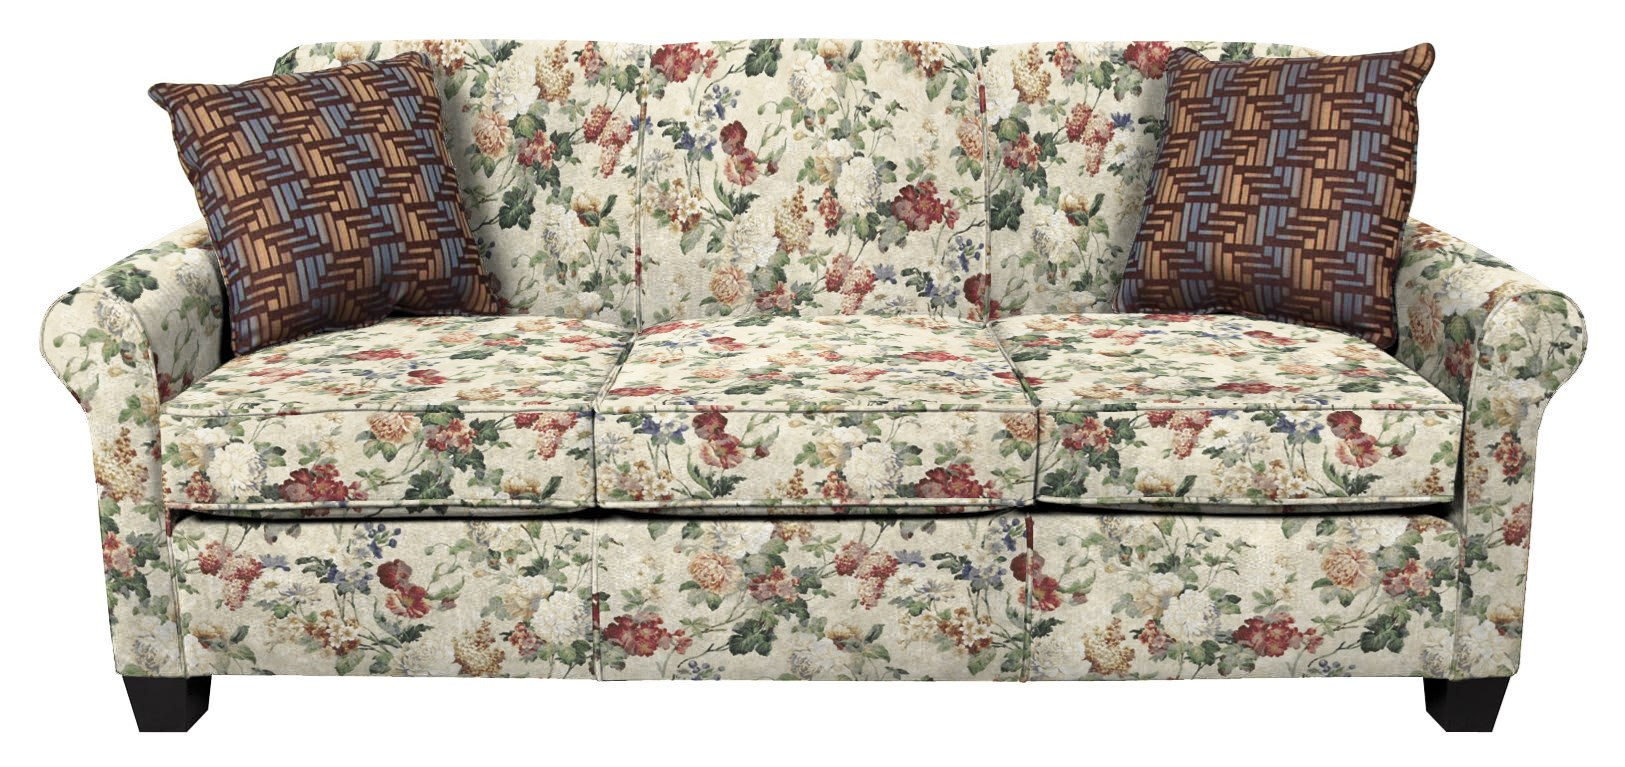 Peachy England Angie Queen Sleeper Sofa With Visco Mattress Pabps2019 Chair Design Images Pabps2019Com